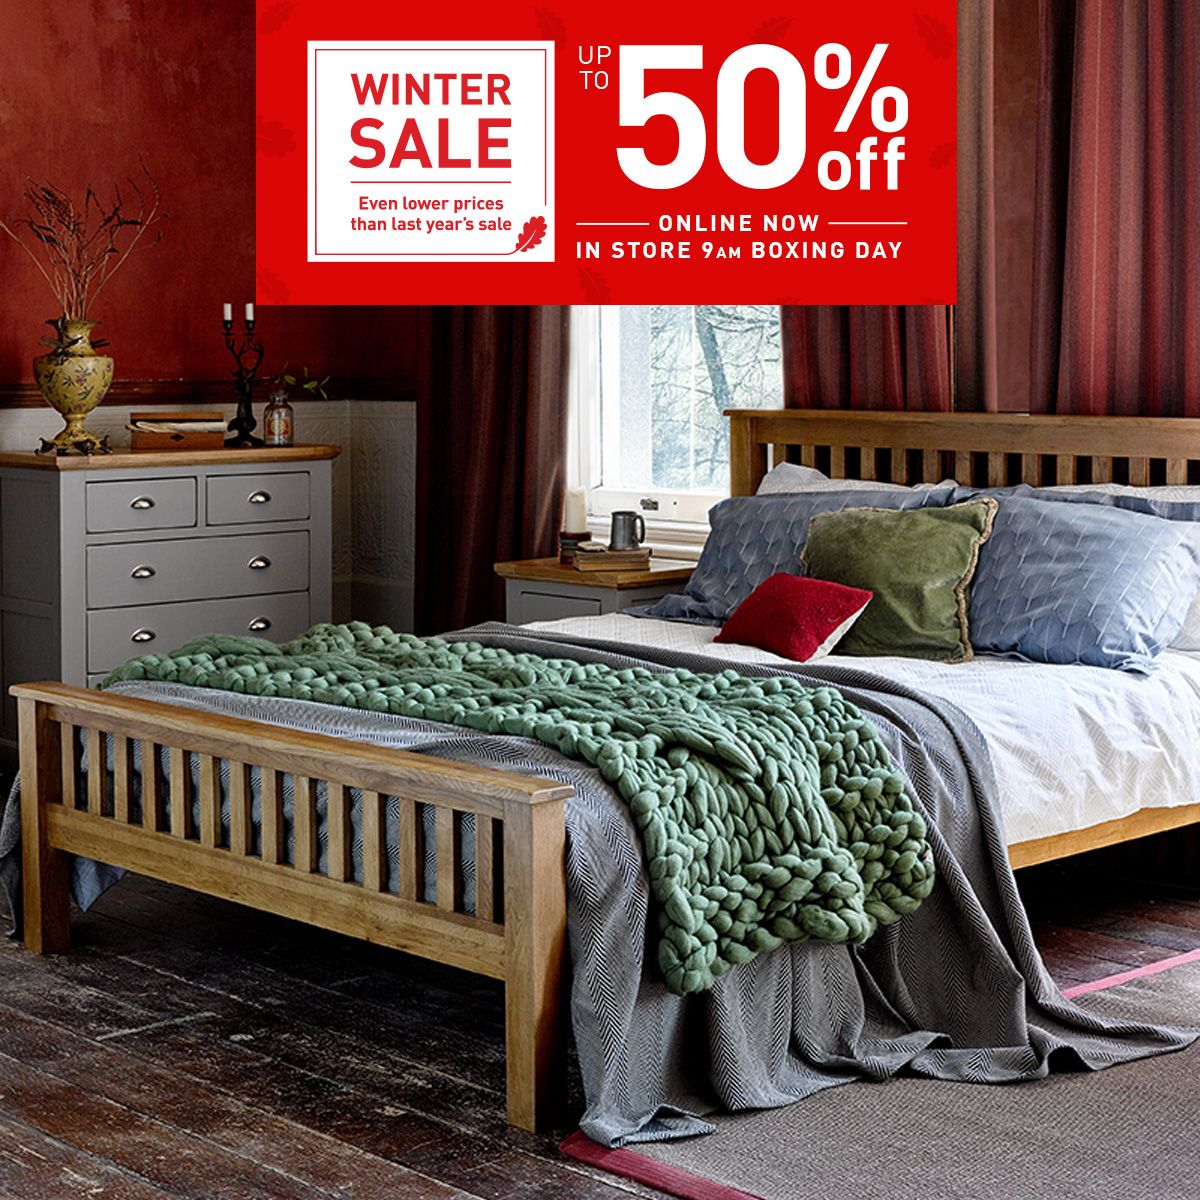 Our Winter Sale Is Now On Join Us In Store And Online For Up To